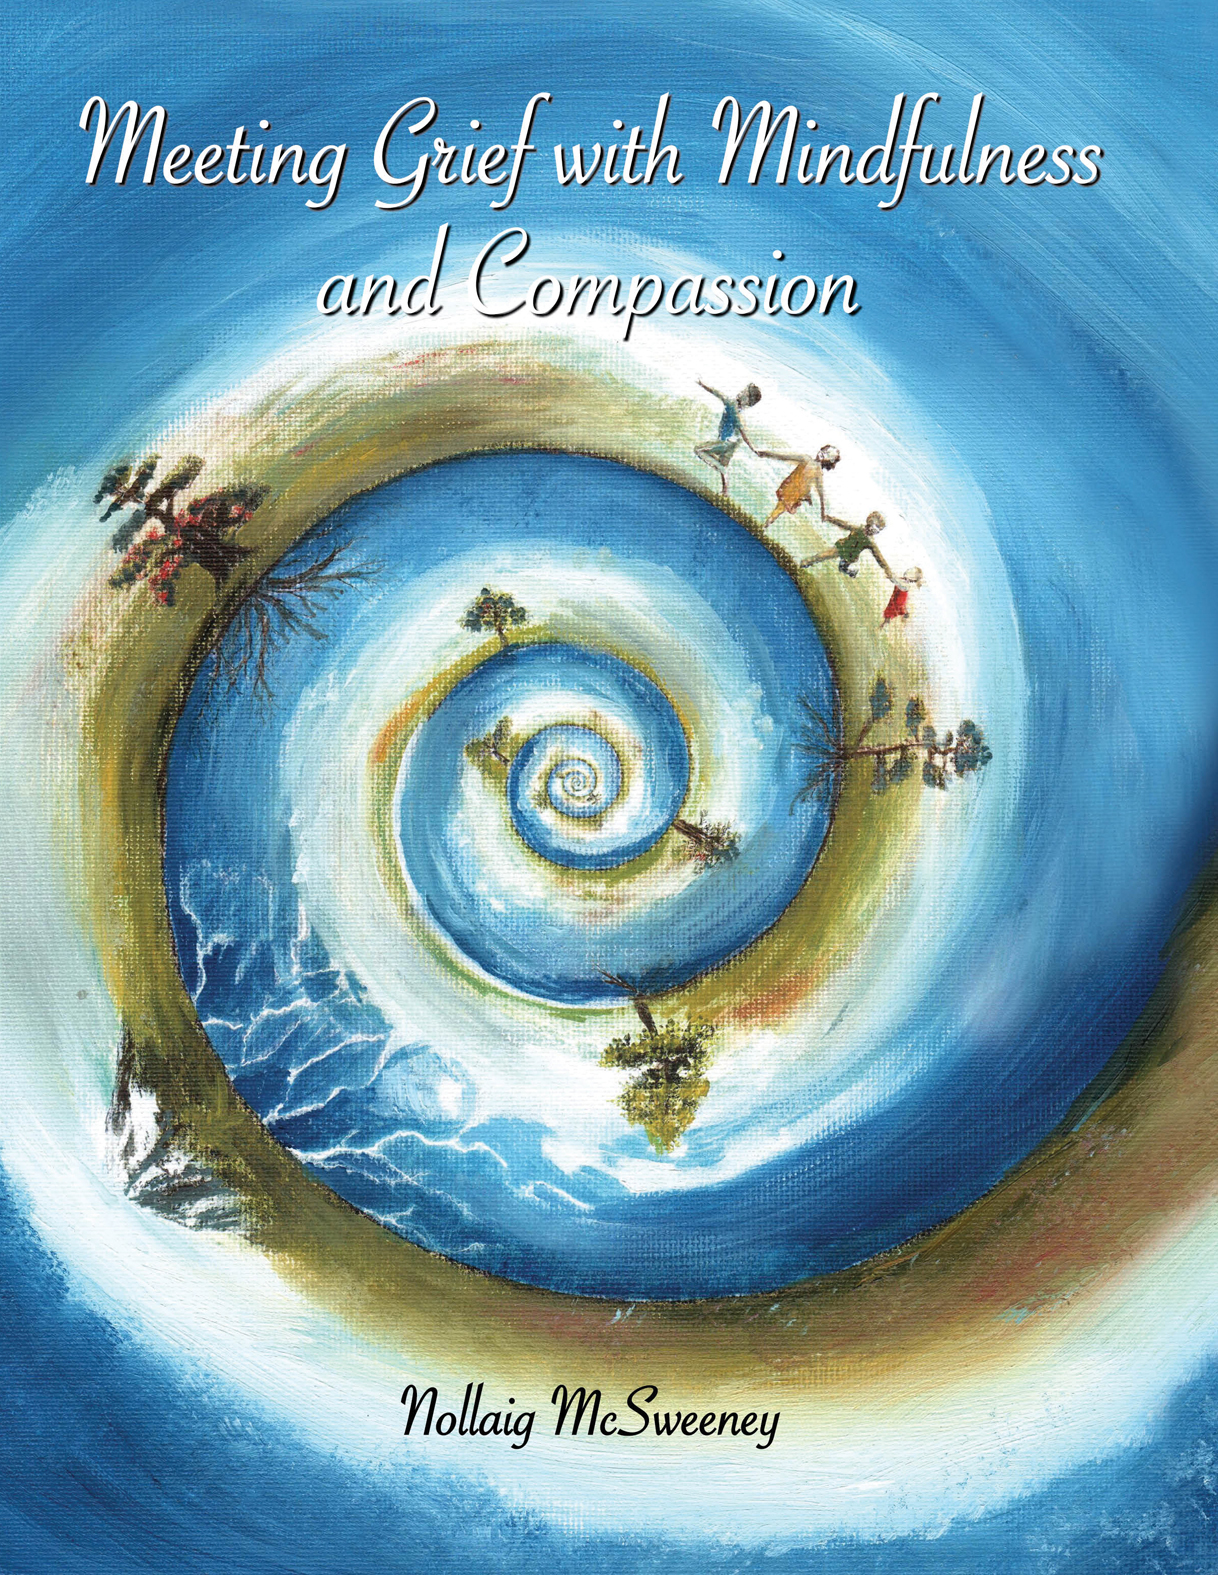 Meeting Grief With Mindfulness and Compassion